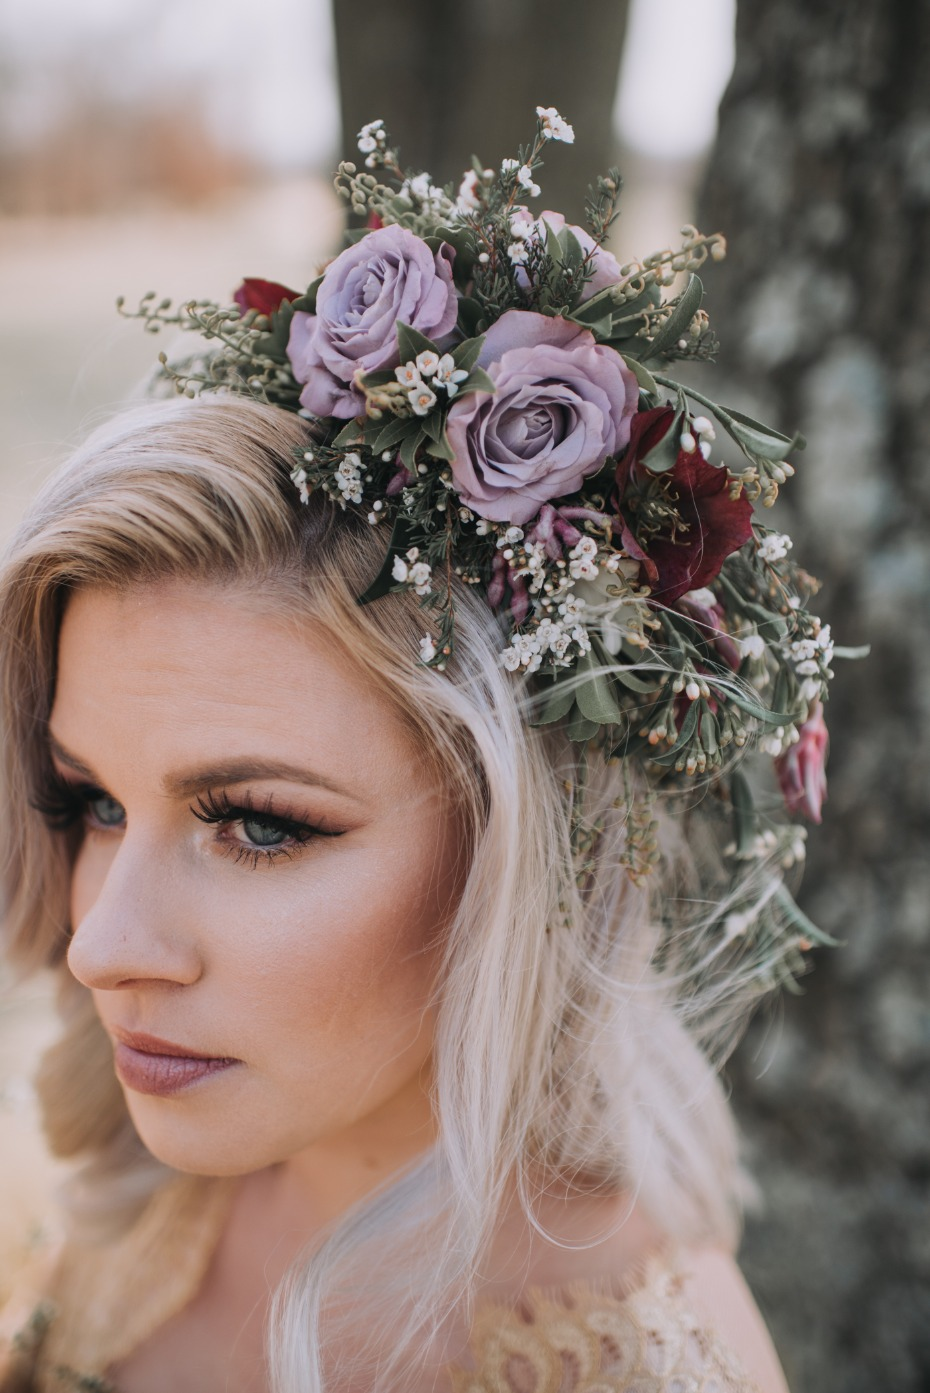 Gorgeous floral crown